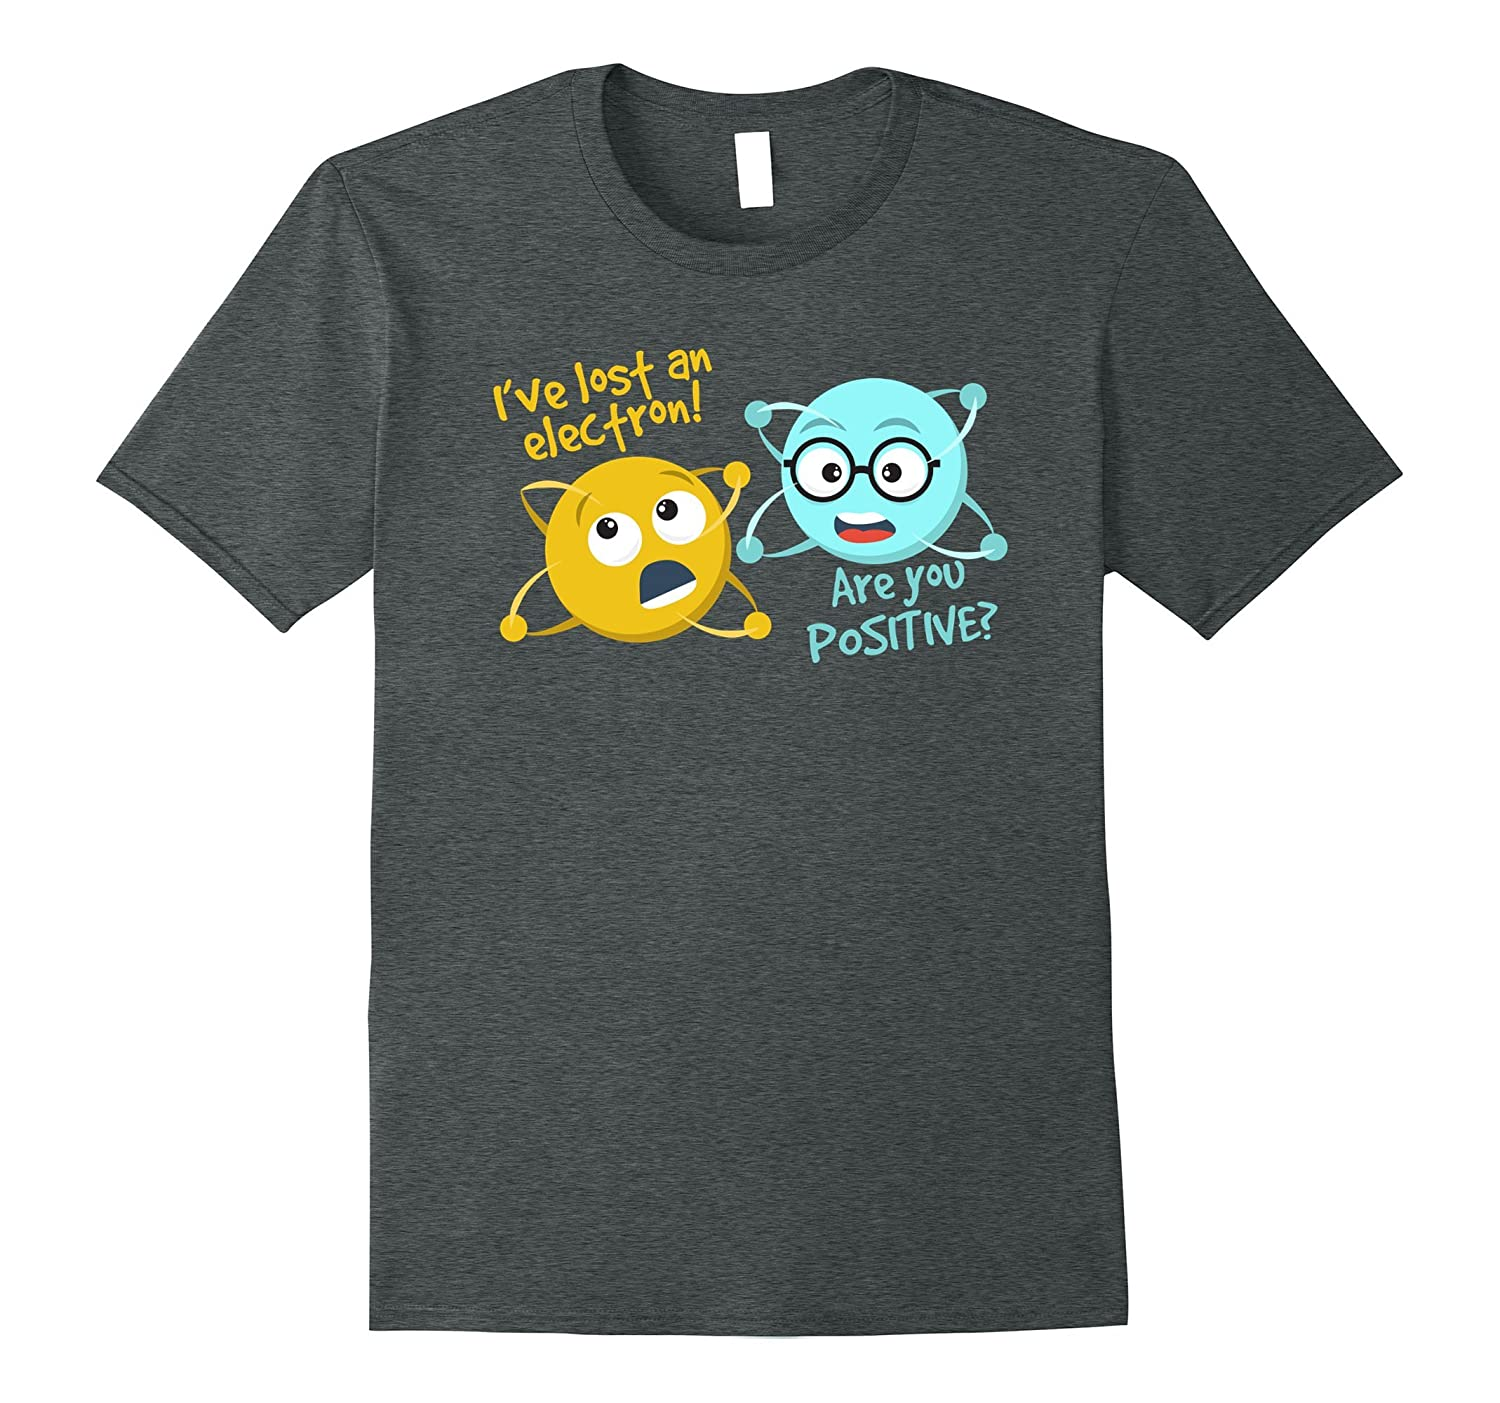 0e13d4254 I Lost an Electron. Are You Positive? Chemistry Joke T-Shirt-FL ...